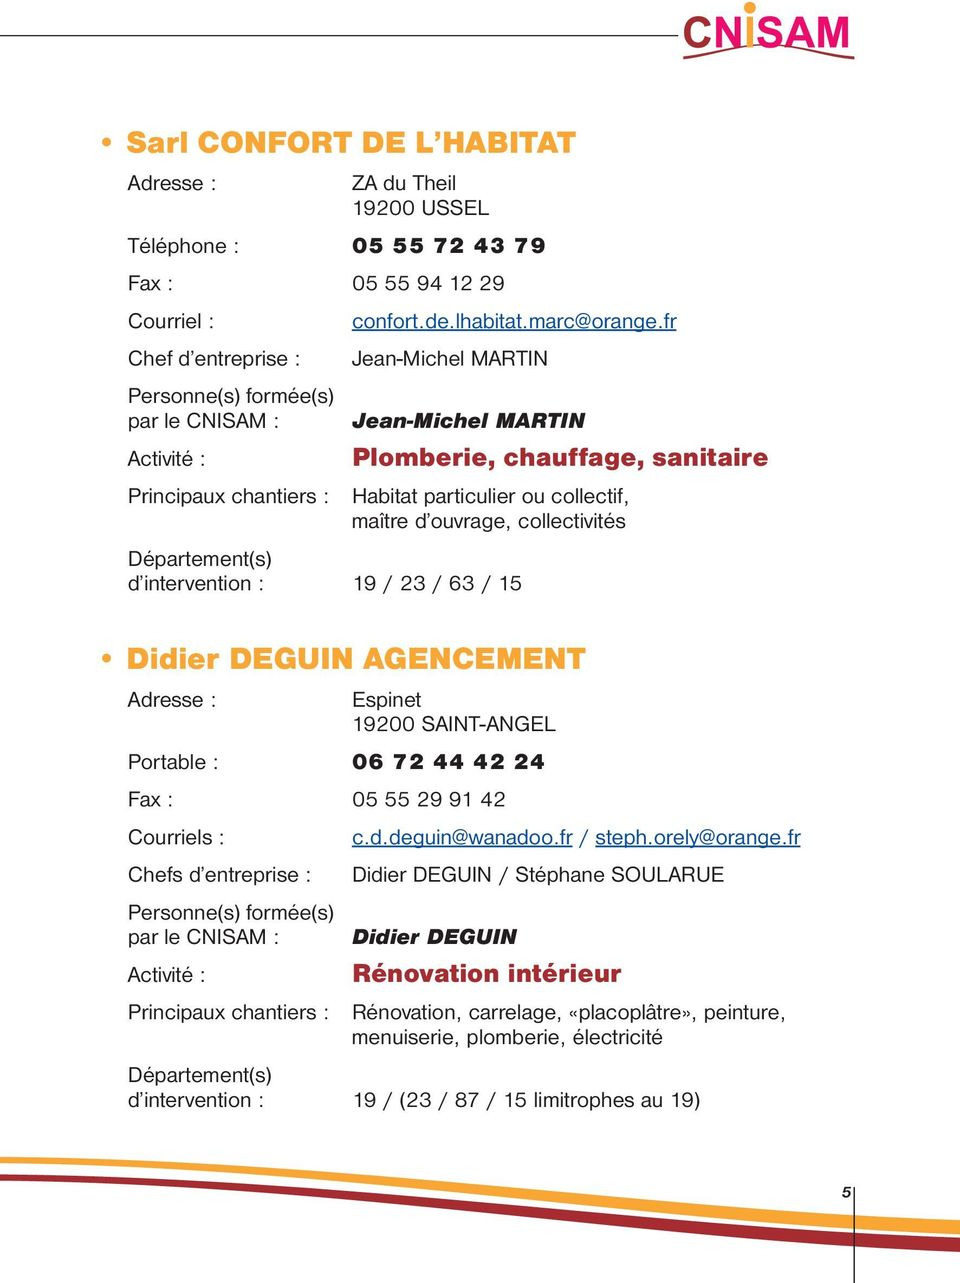 intervention : 19 / 23 / 63 / 15 Didier DEGUIN AGENCEMENT Espinet 19200 SAINT-ANGEL Portable : 06 72 44 42 24 Fax : 05 55 29 91 42 Courriels : Chefs d entreprise : c.d.deguin@wanadoo.